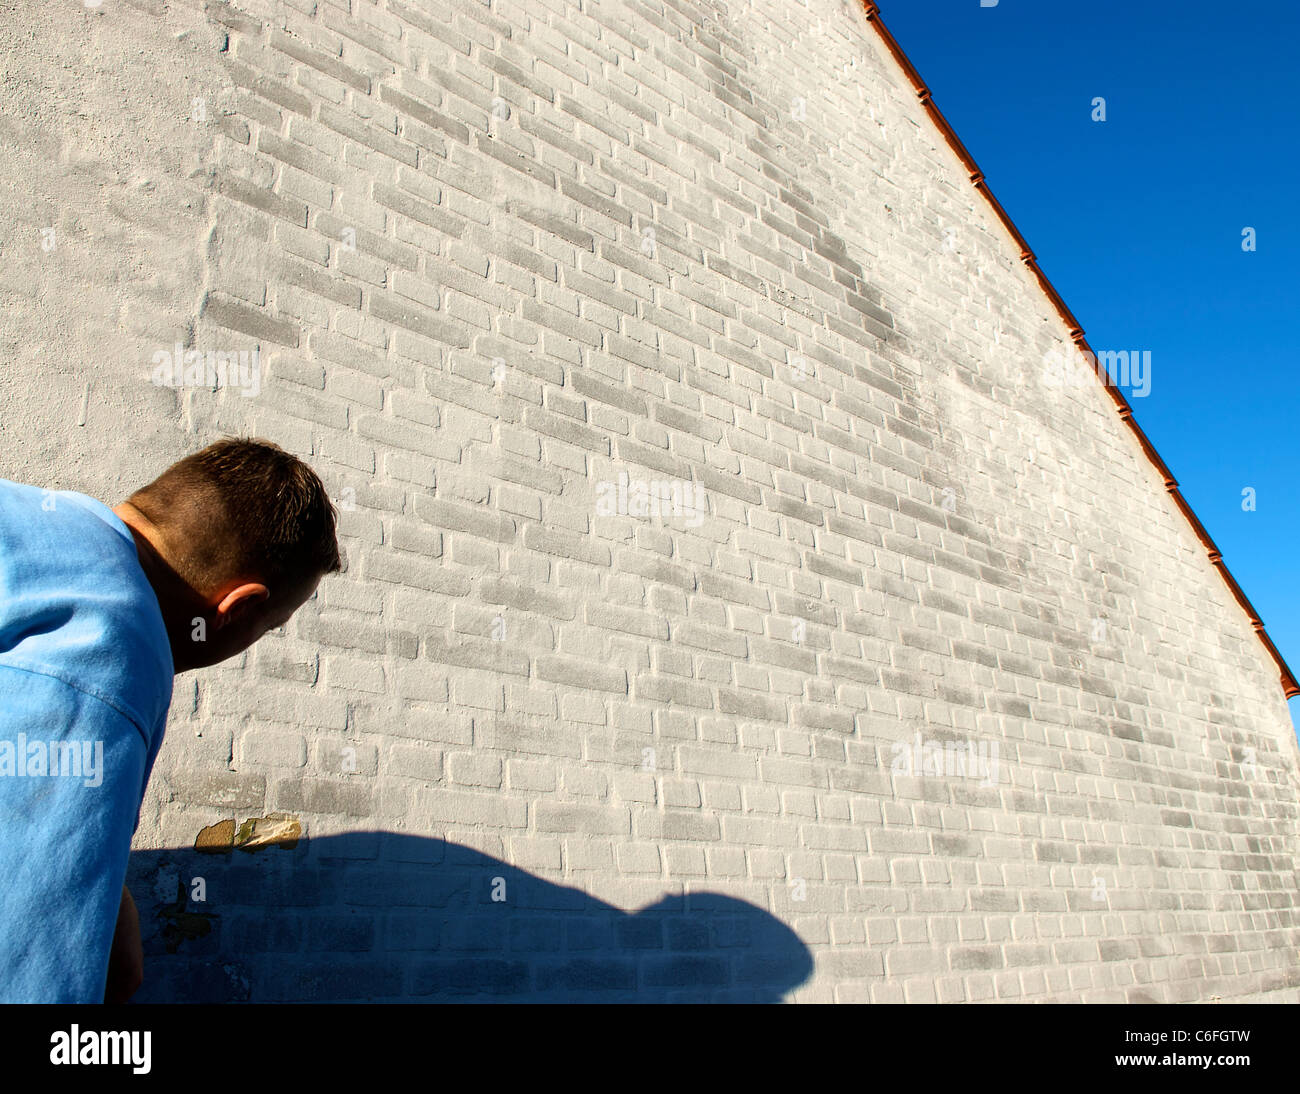 CONSTRUCTION WORKER - Stock Image